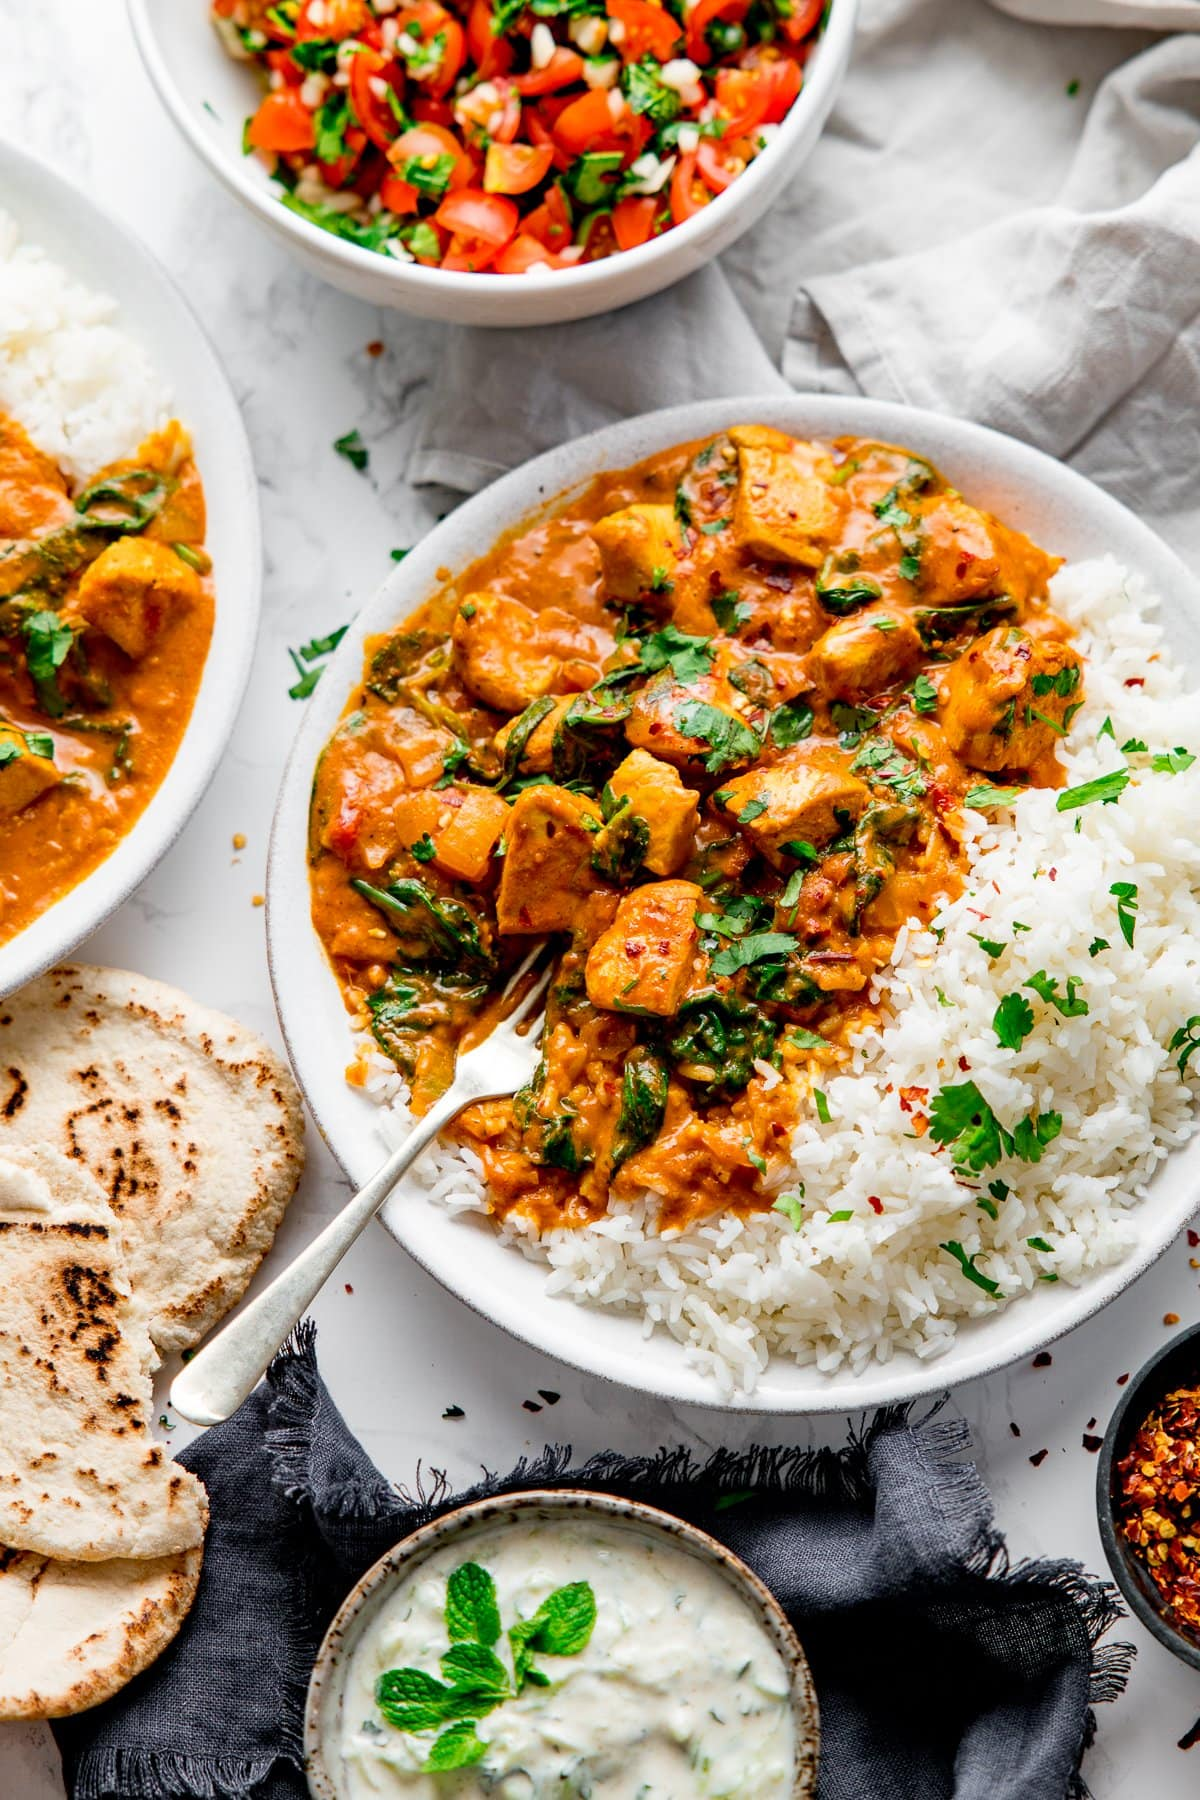 White bowl with chicken curry and rice with a fork digging into the curry. Ingredients and side dishes scattered around.